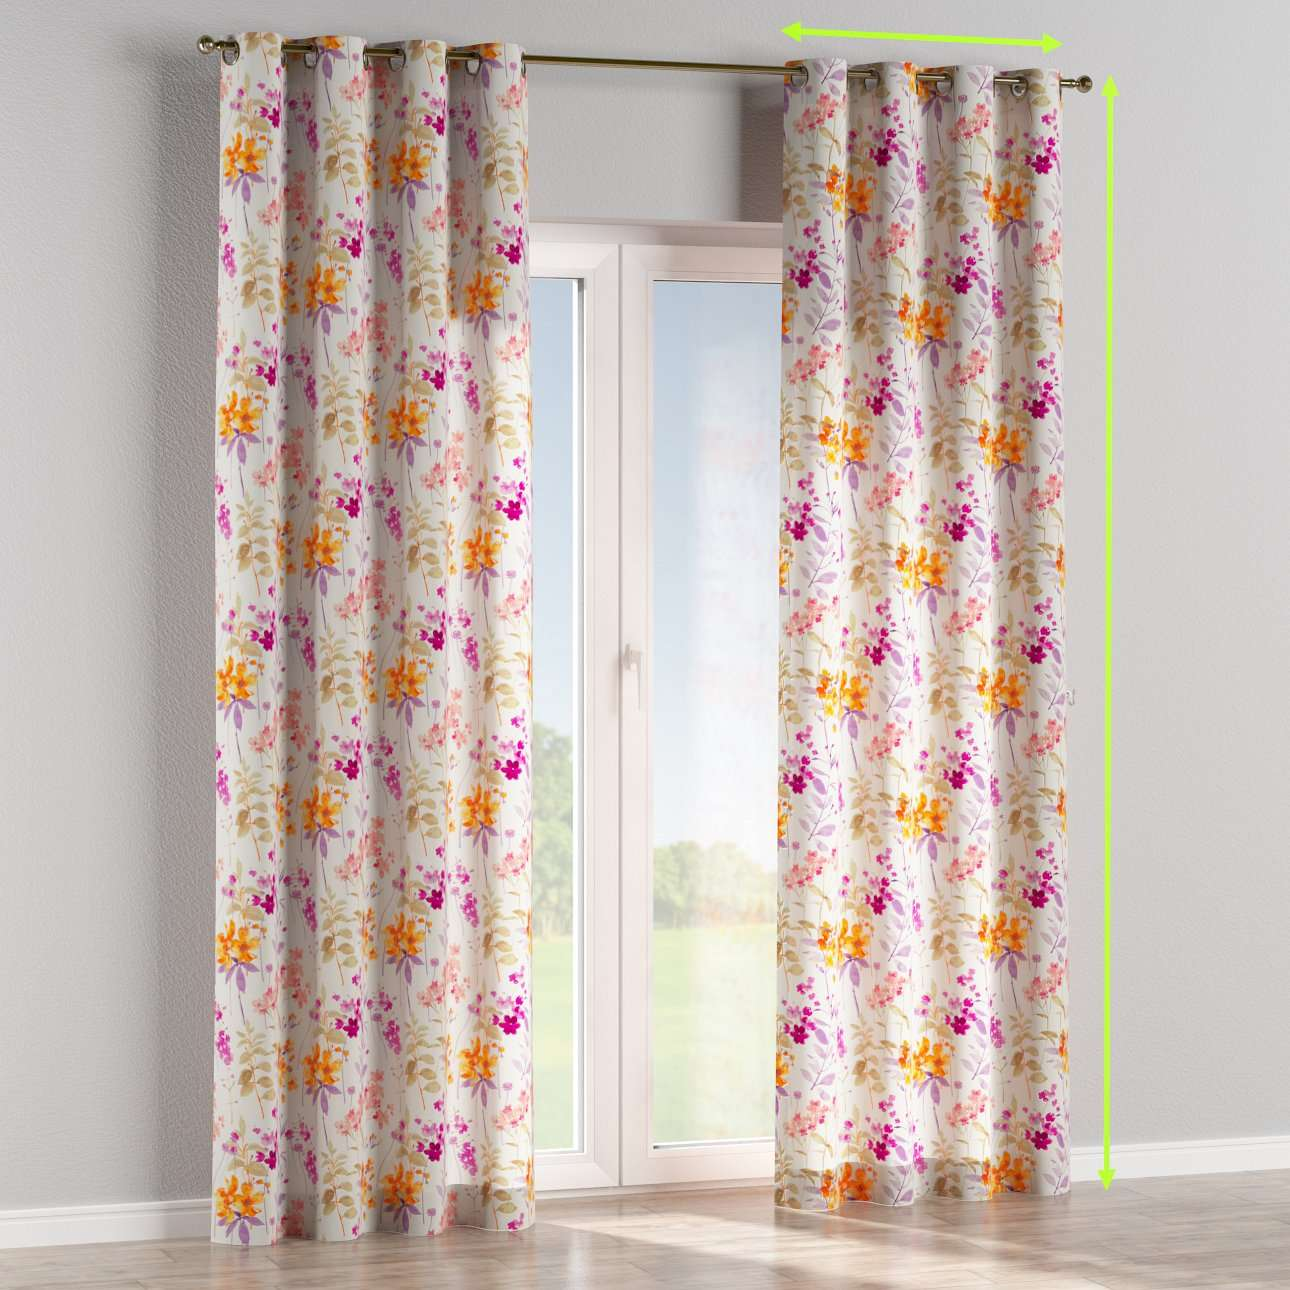 Eyelet lined curtains in collection Monet, fabric: 140-04